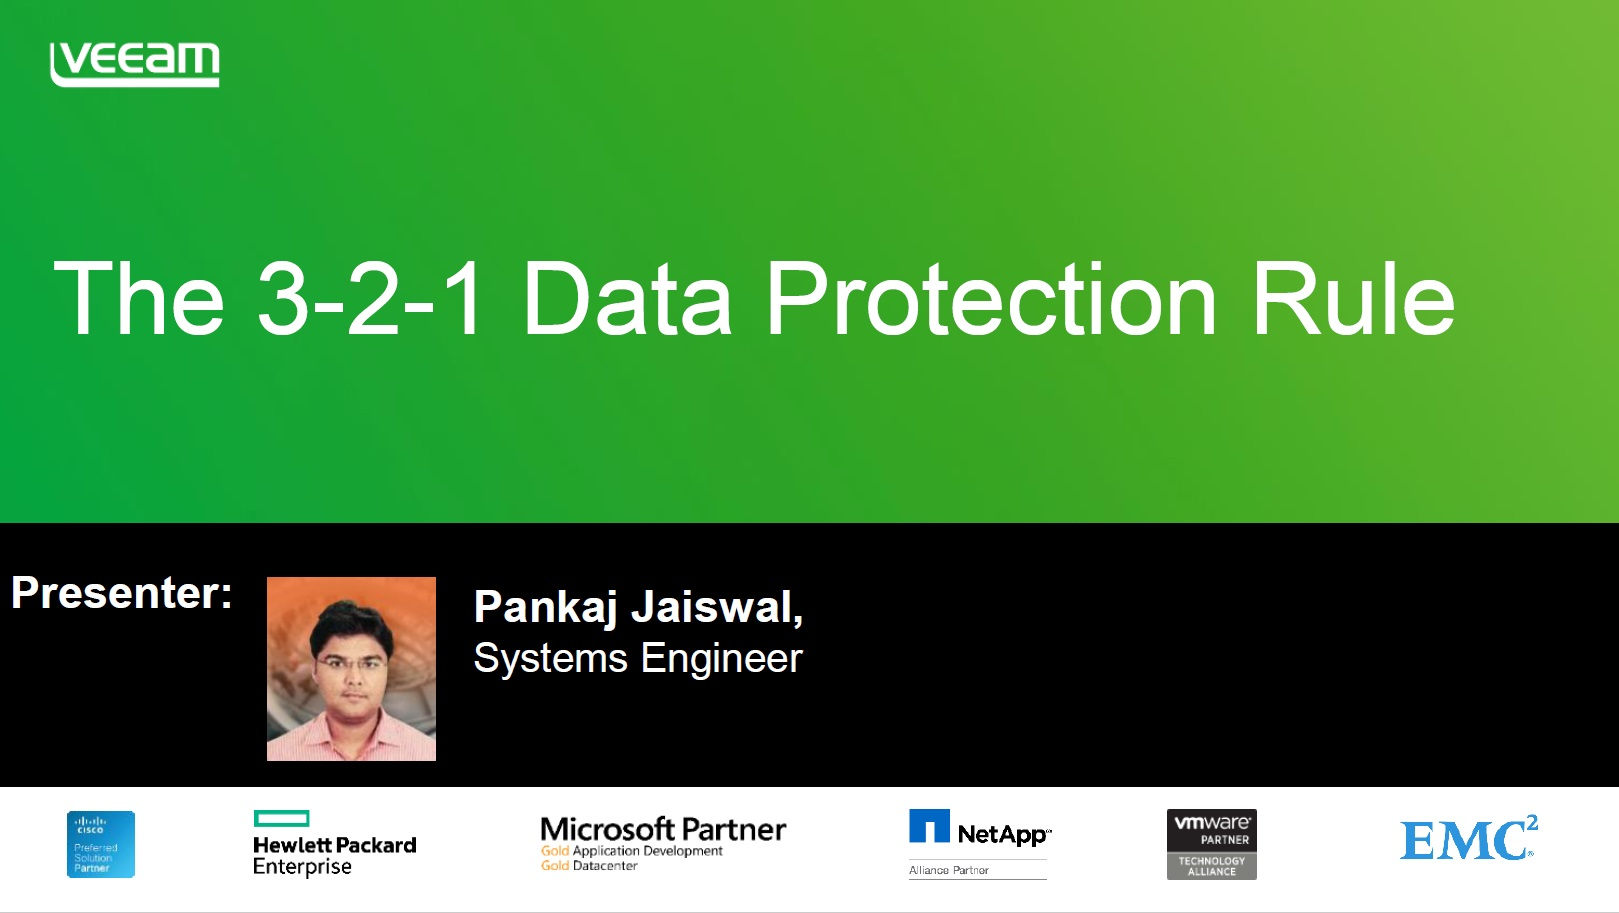 The 3-2-1 Data Protection Rule: Why Your Enterprise Should Live by It